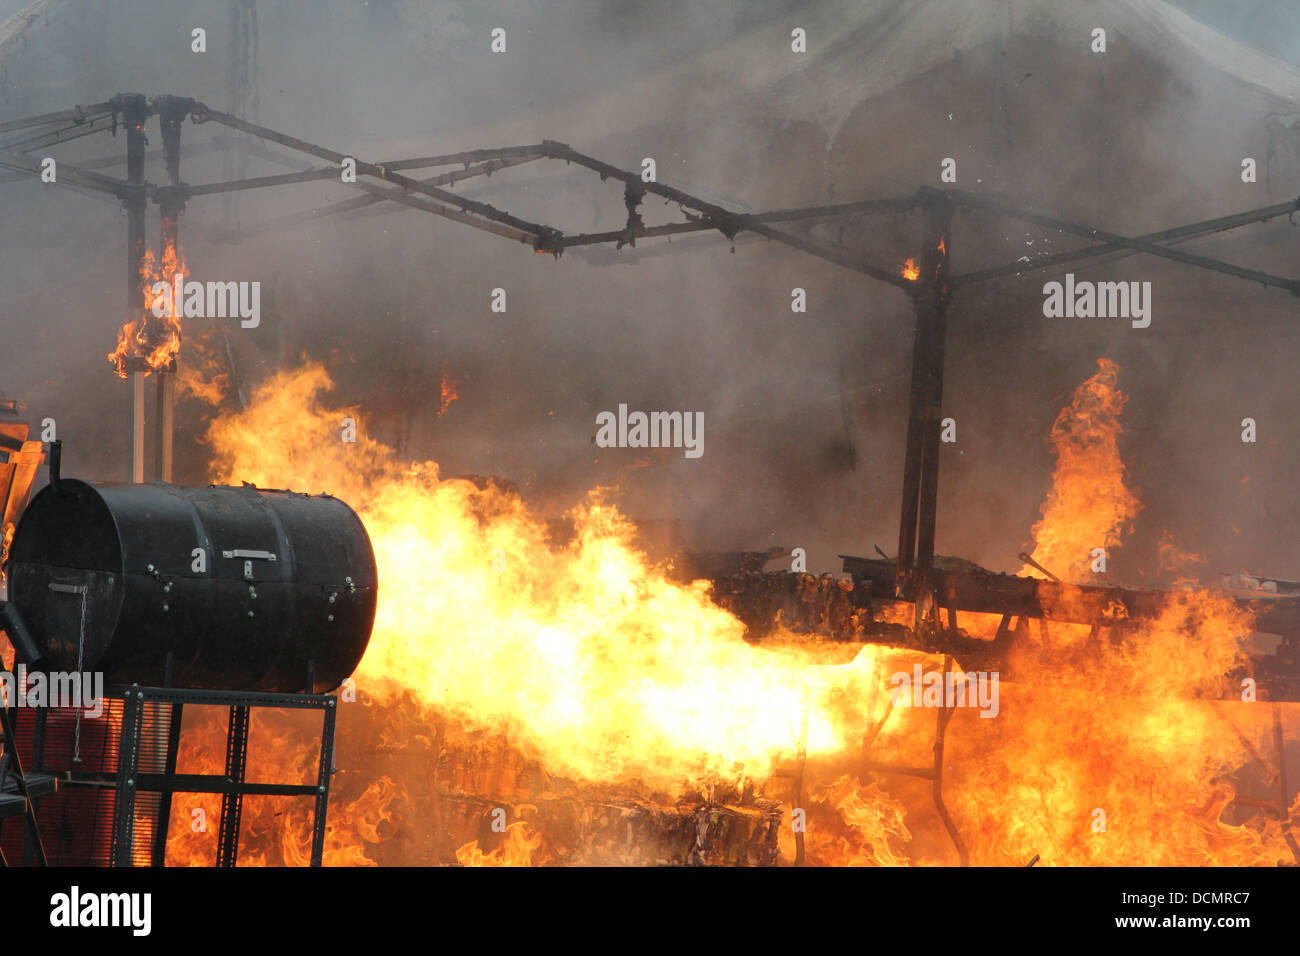 Raging uncontrolled fire that has gutted several marquees selling food and other items at a community event in North - Stock Image